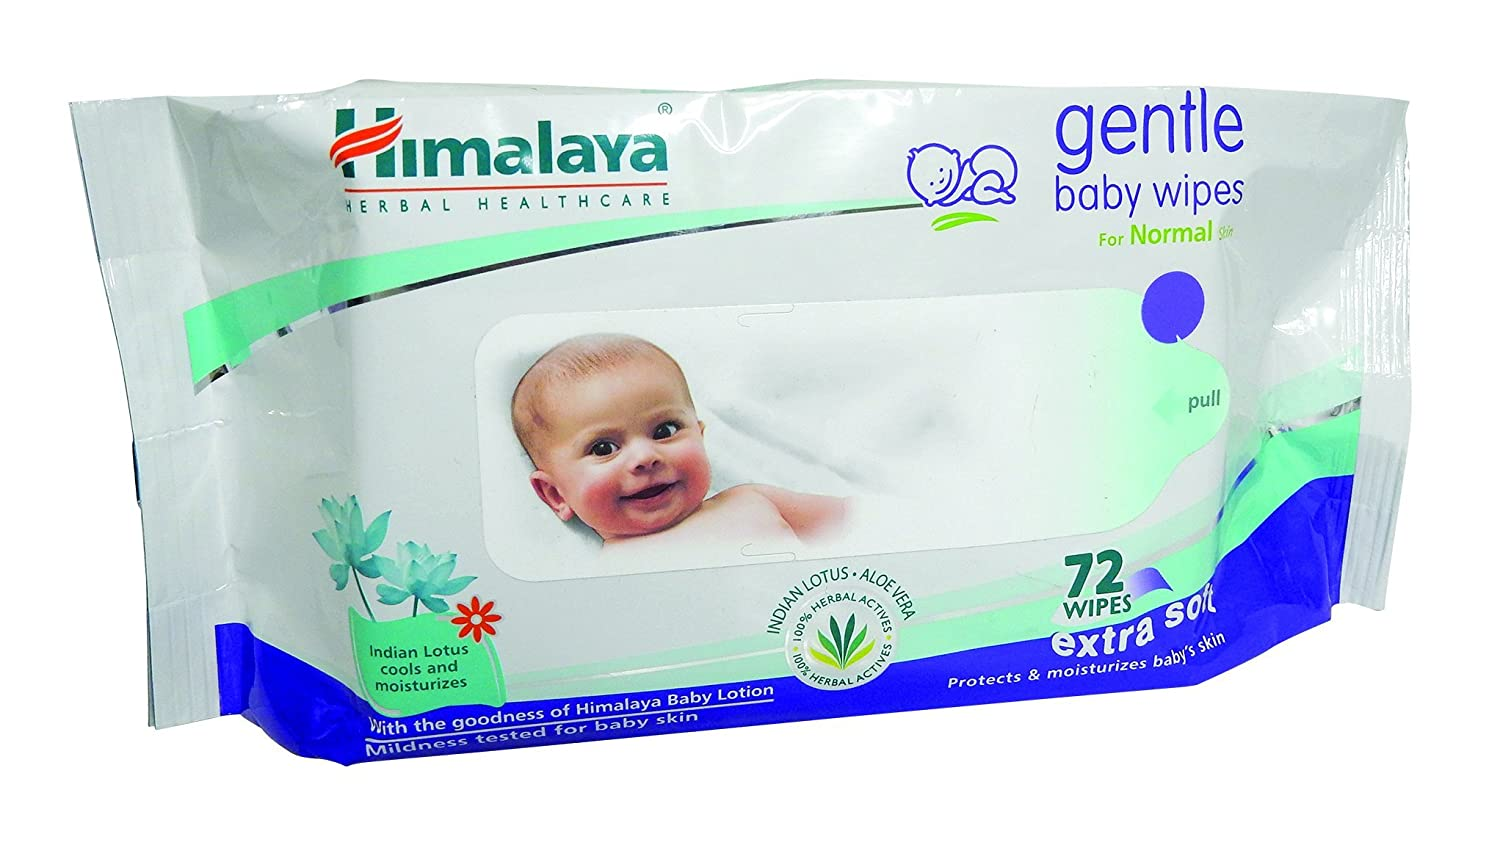 Himalaya Herbals Gentle Baby Wipes (72 Sheets) By Amazon @ Rs.100